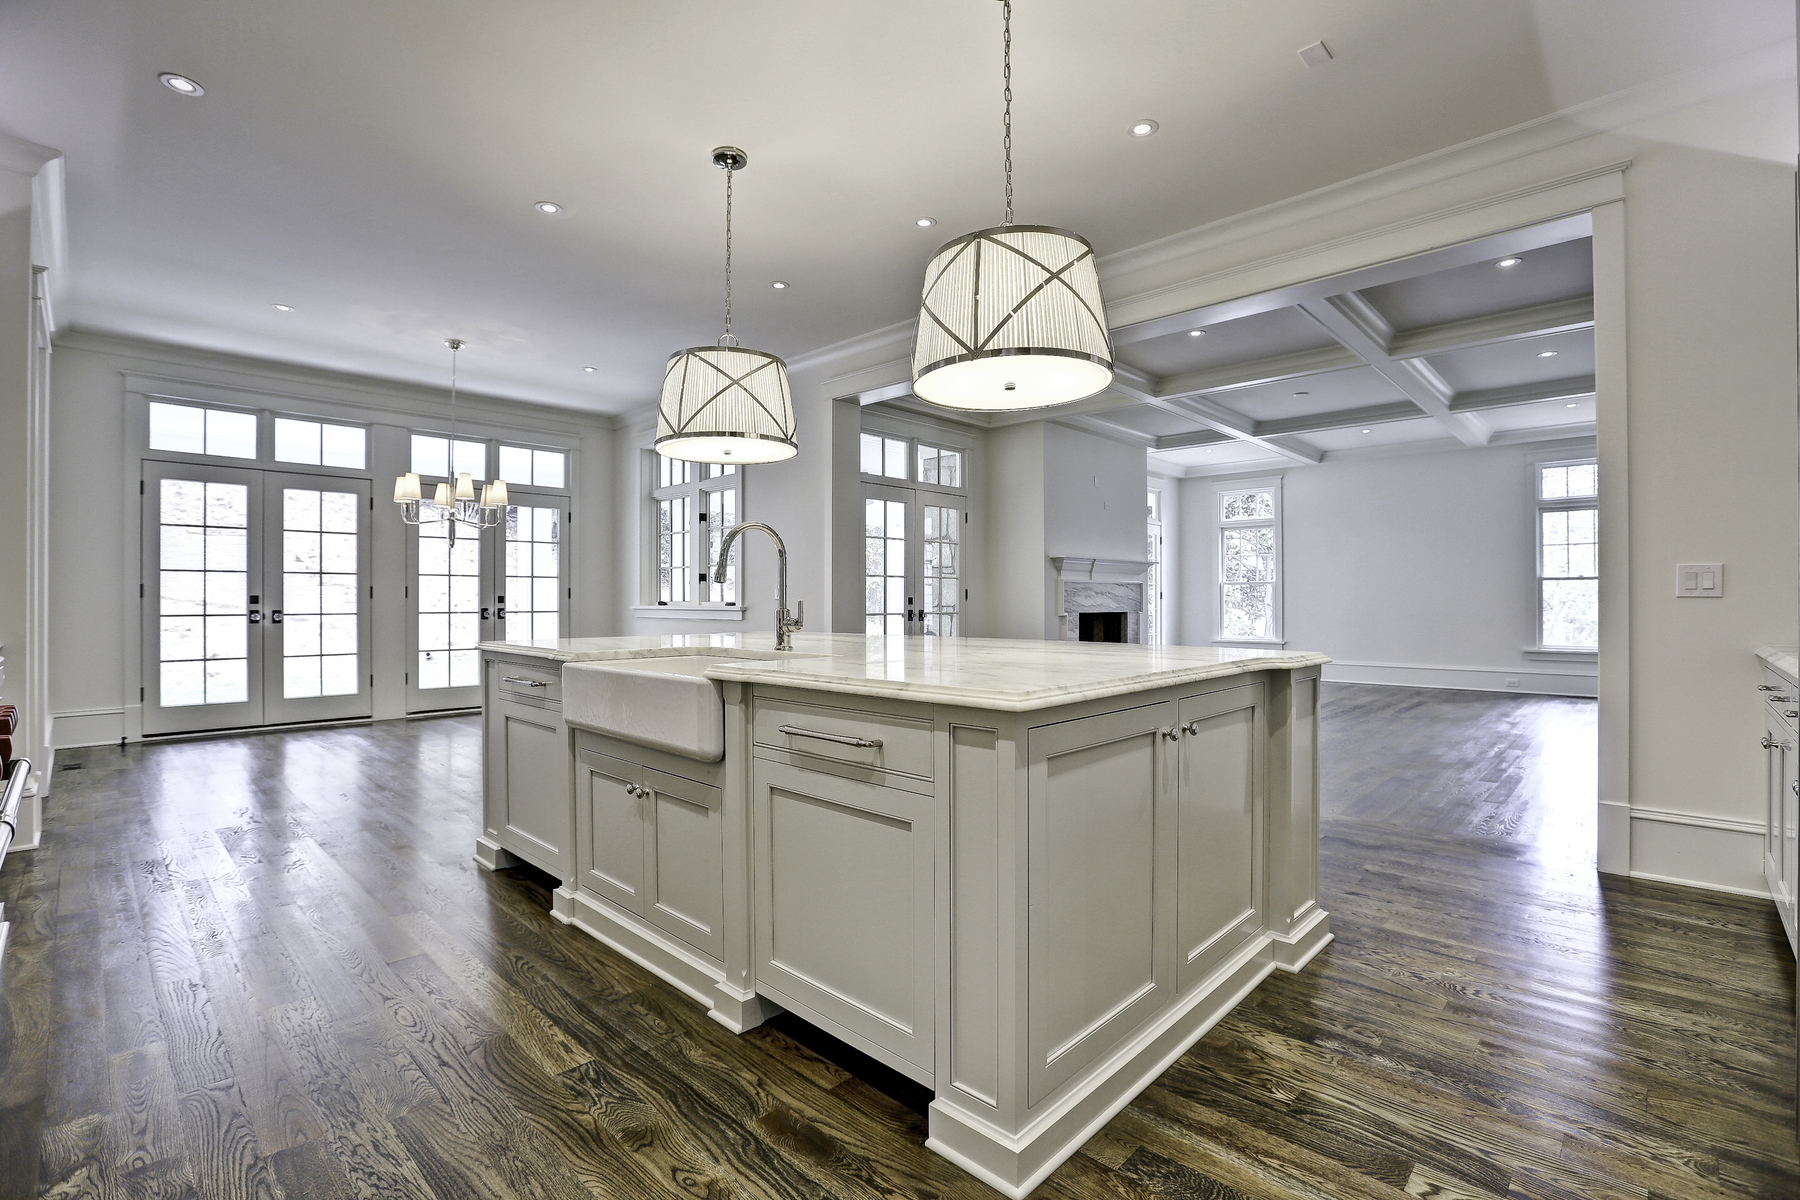 Additional photo for property listing at Deluxe Custom New Construction by Jackbilt Homes on Sought-After Street 479 Argonne Drive NW Atlanta, Georgië 30305 Verenigde Staten